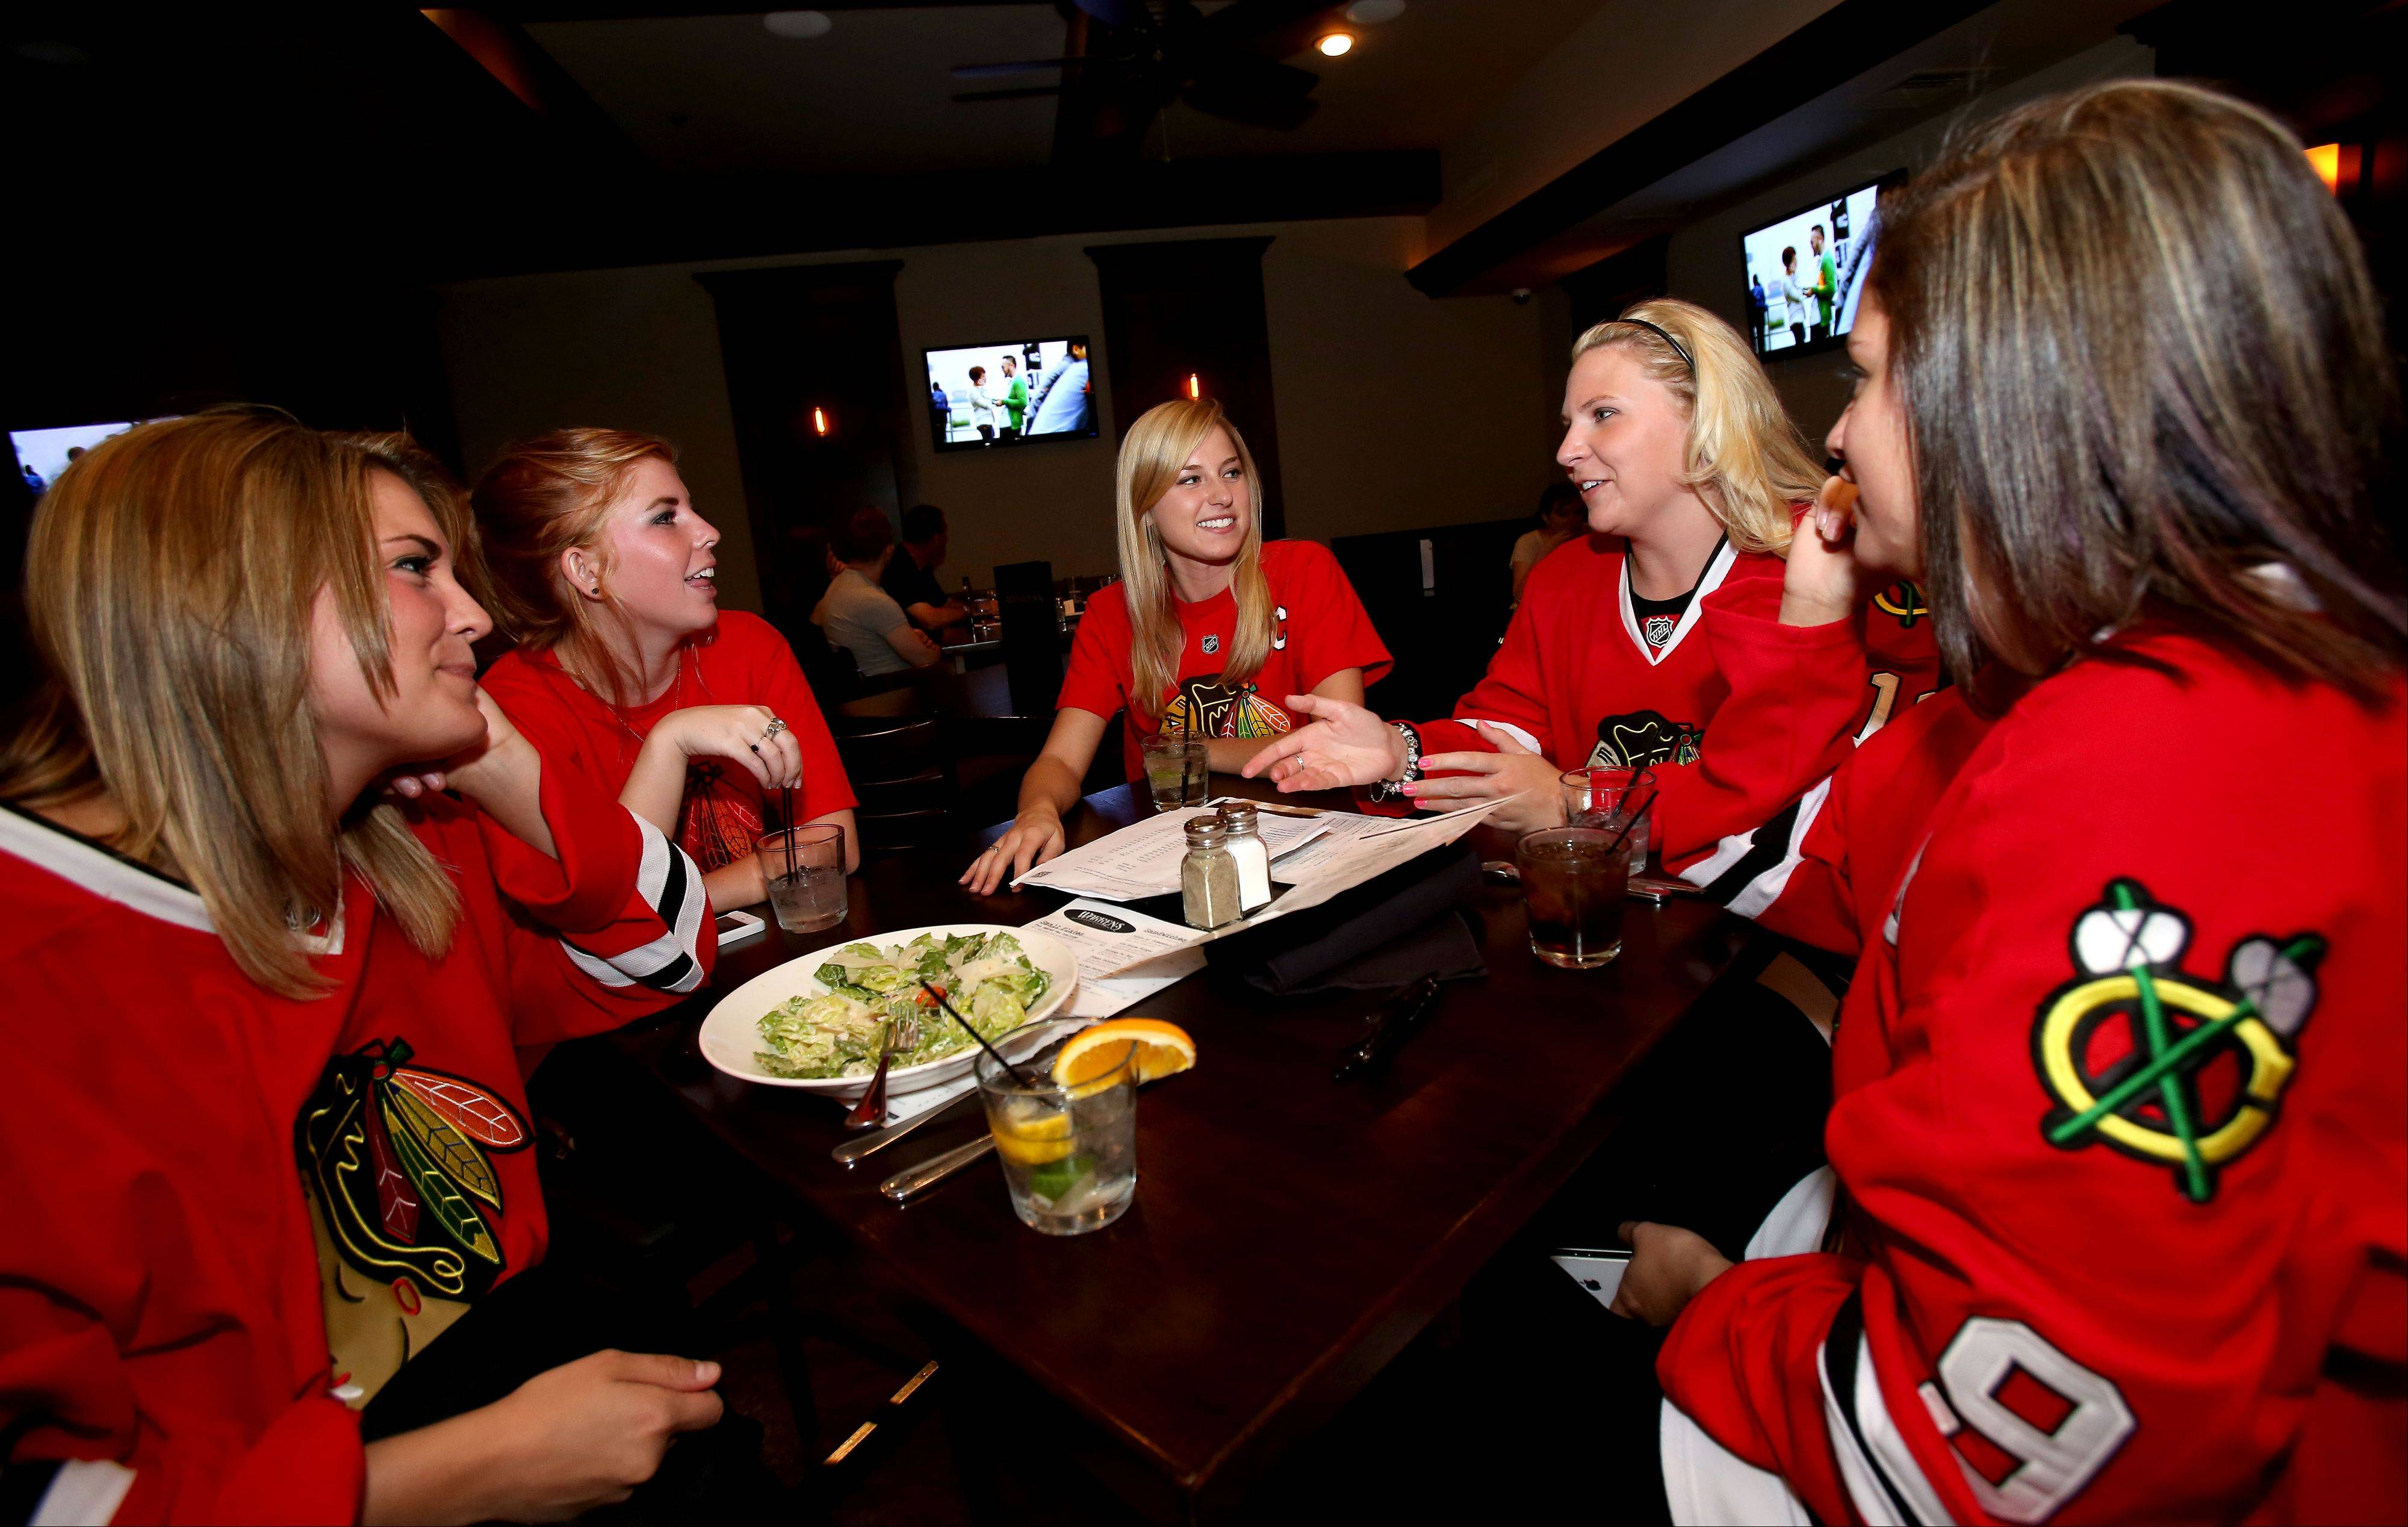 Fans Elise Bassi, left, Courtney Croft, Lindsey Hafer, Brittany Breisch and Macarena Hermosilla enjoyed a night out at Warren's Ale House in Wheaton during a recent Blackhawks game.